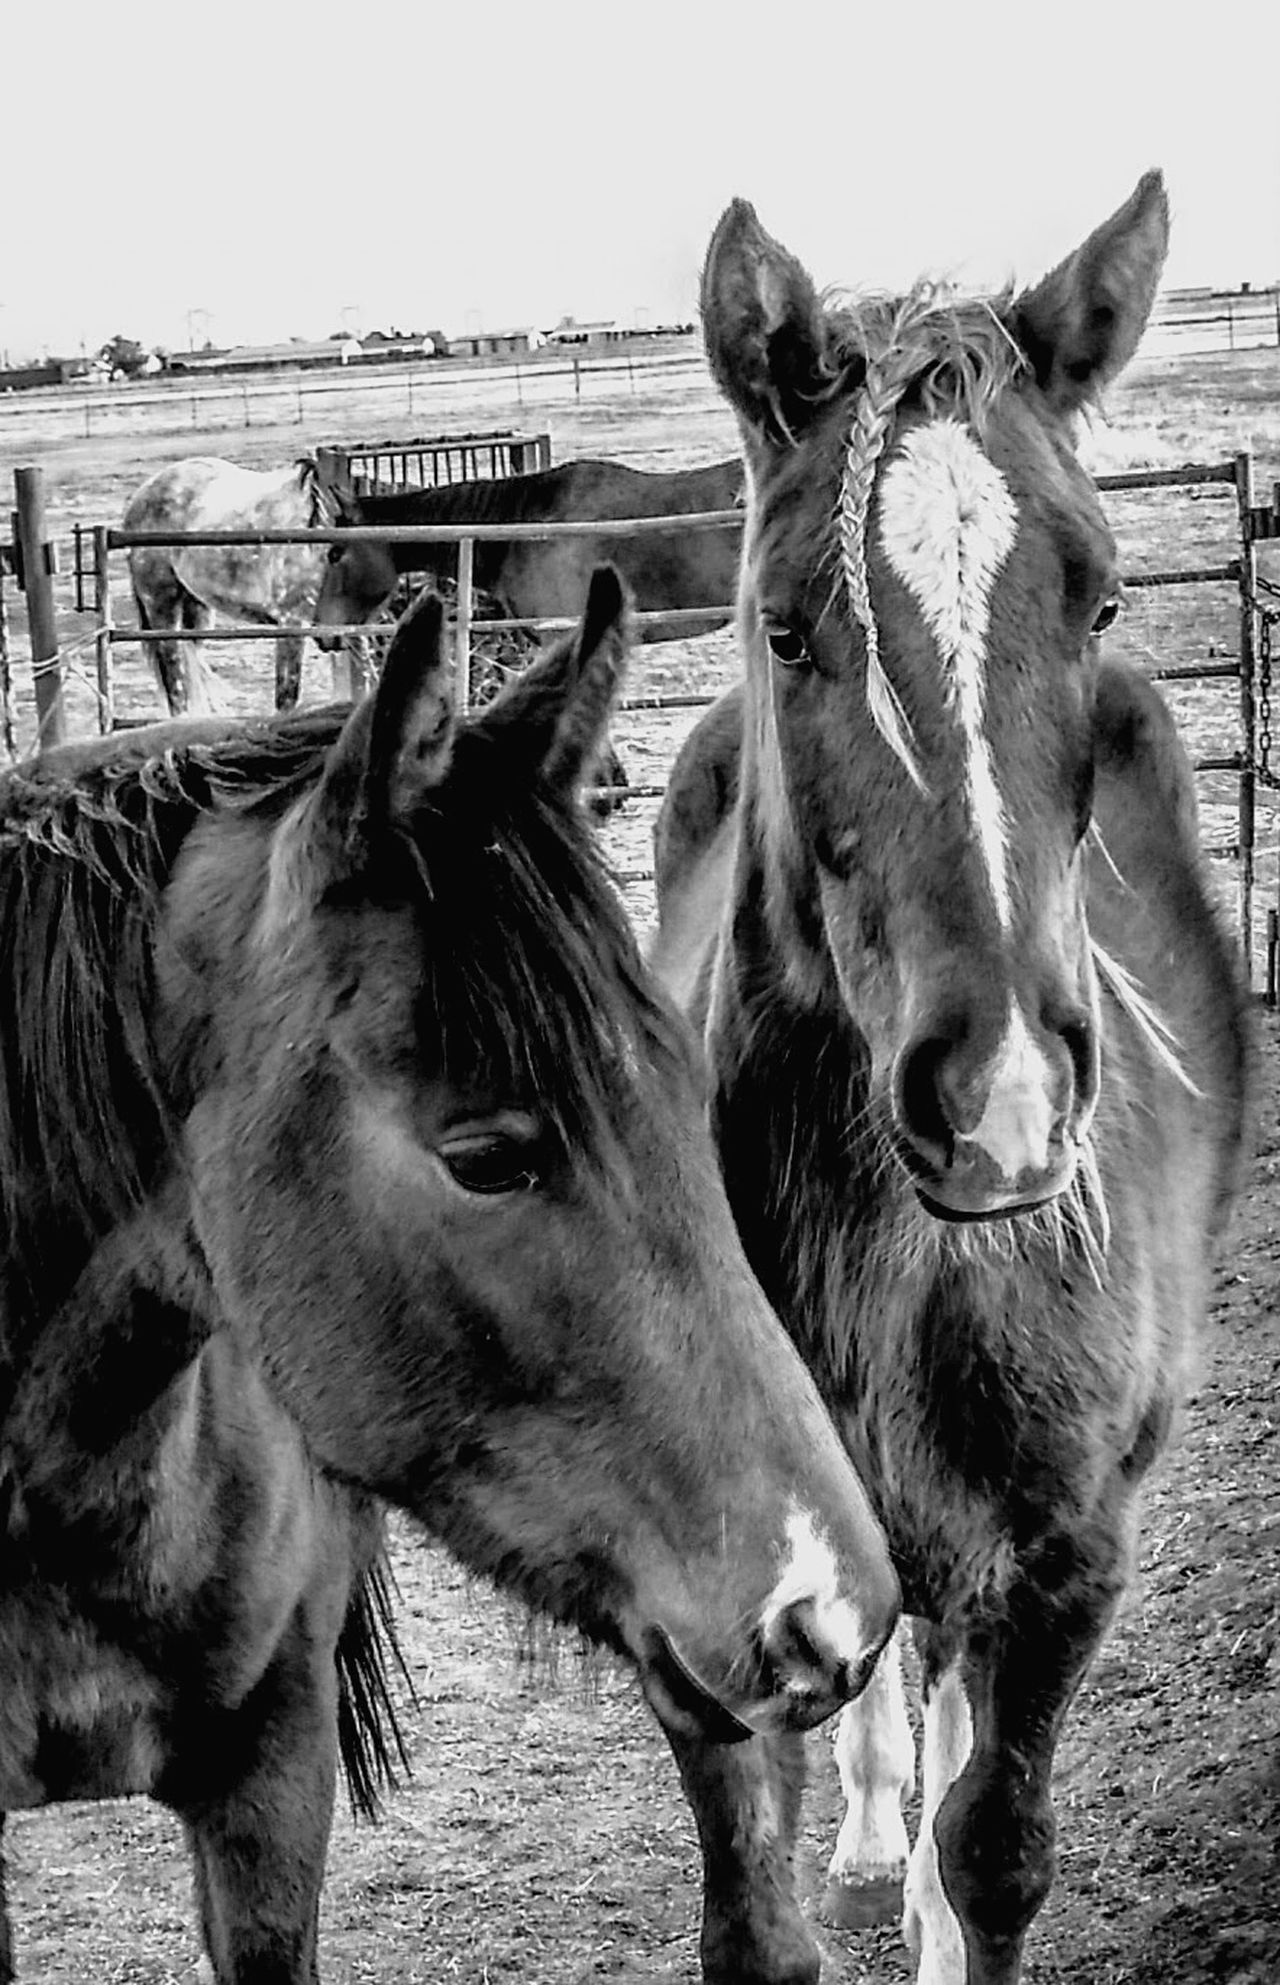 Ranch horses Horse Animal Themes Domestic Animals Mammal Livestock No People Nature Ranch Ranch Life Barn Mane Farm Cowboy Stable Livestock Country Living Sunlight Lifestyle Pasture, Paddock, Grassland, Pastureland Working Animal Pony Filly Country Life Paddock Hoofed Mammal